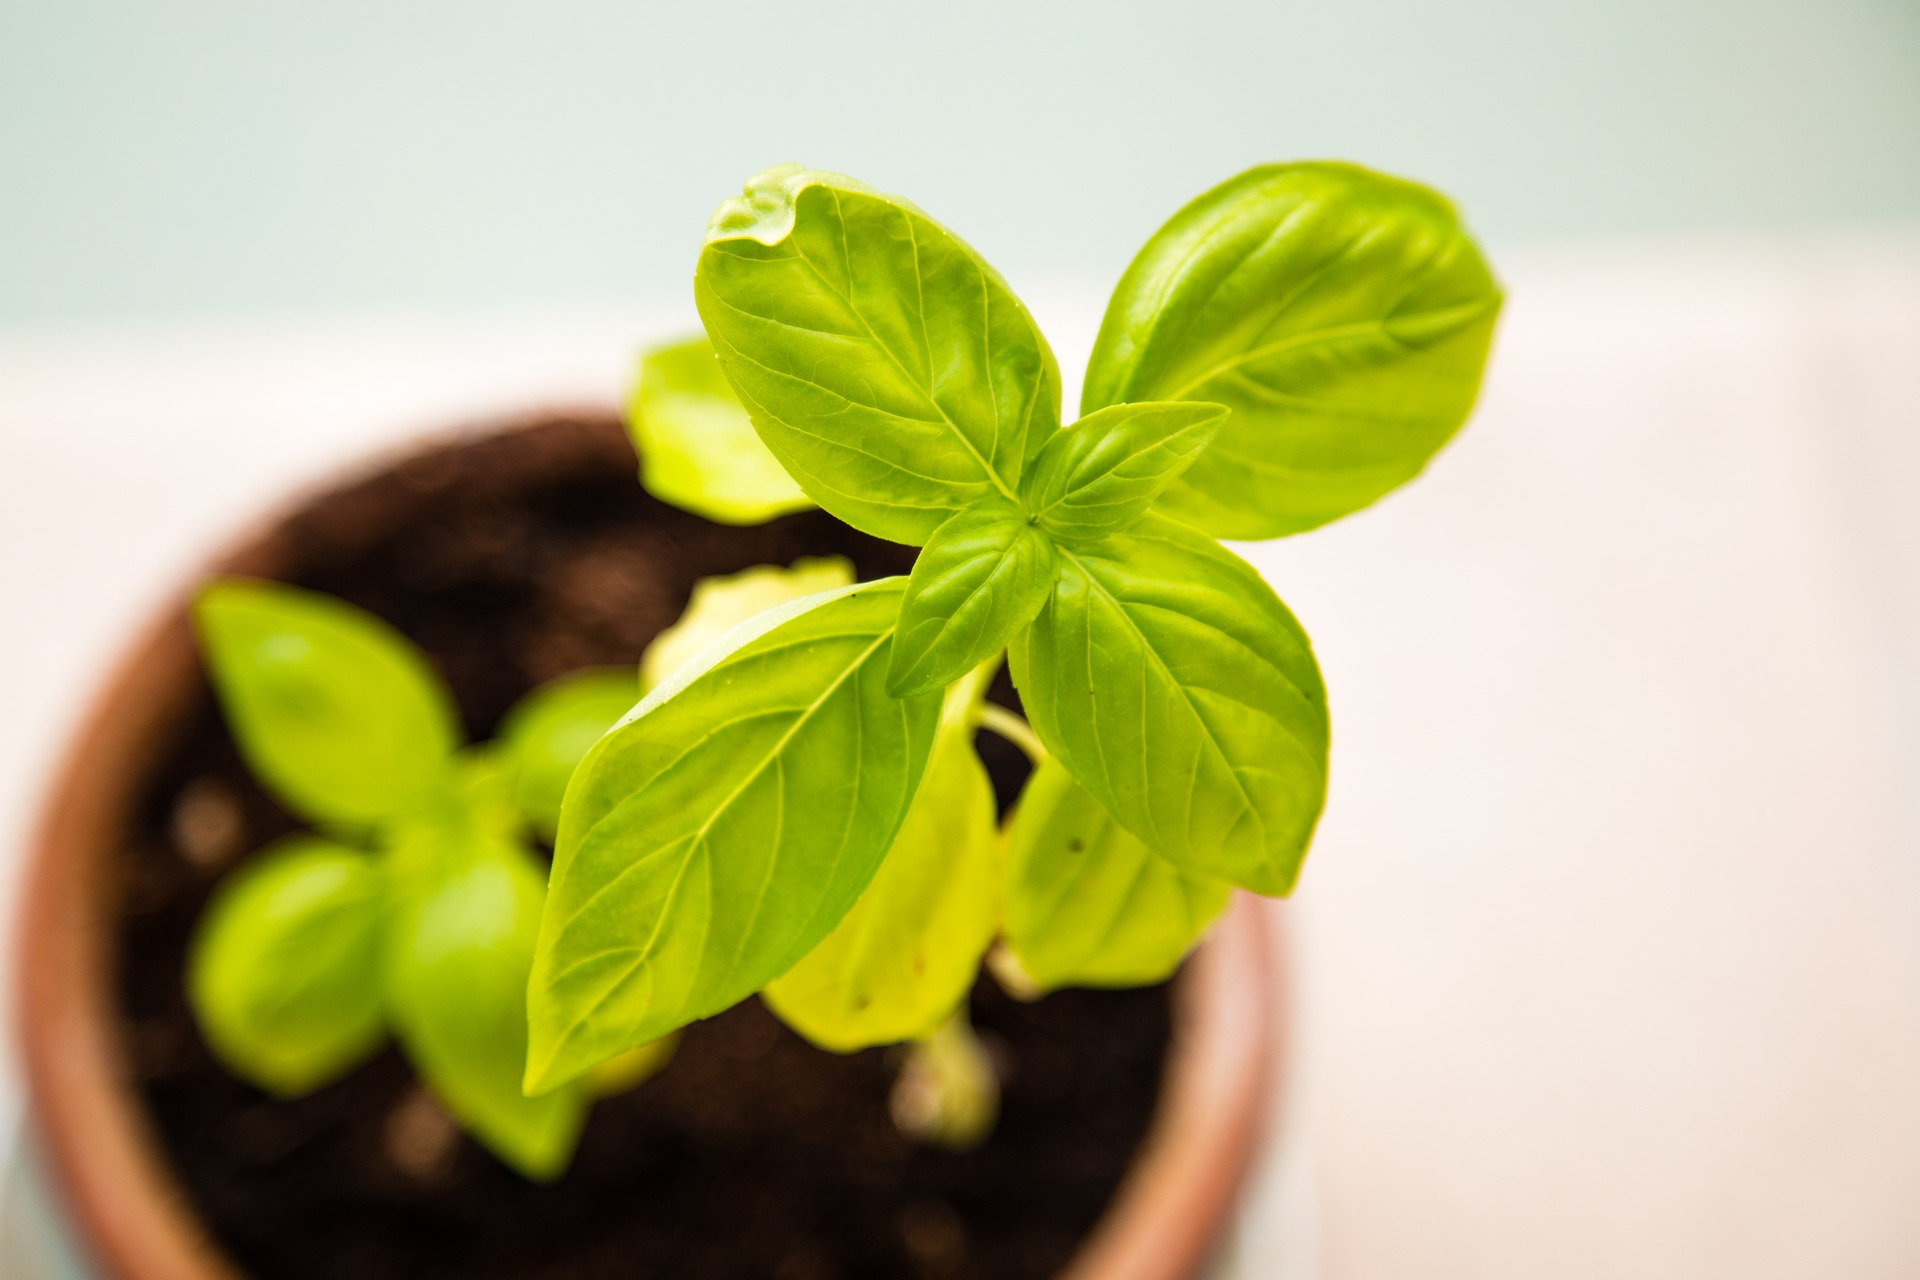 11 top secret hacks for beginning urban farmers to grow better basil plants